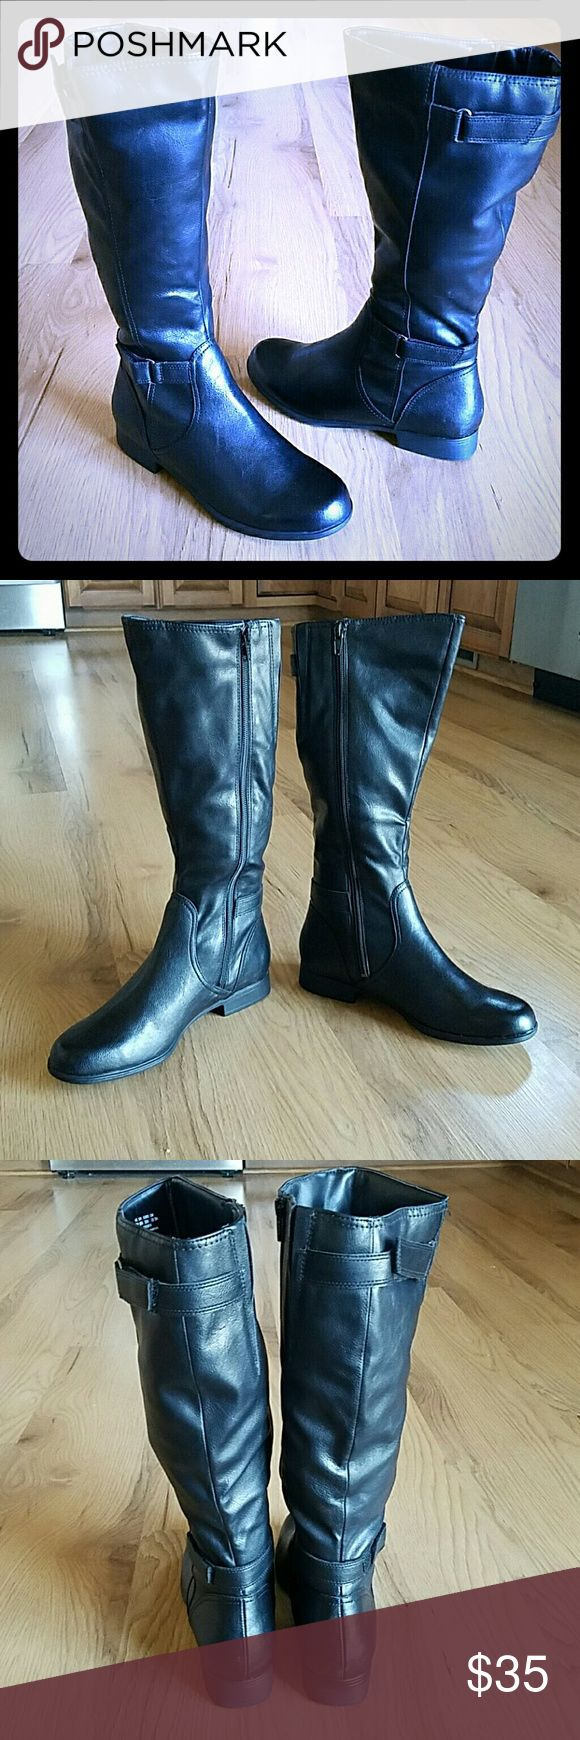 NWOT Hush Puppies Black Boots Hush Puppies Black zip up boots size 8. They go up to mid calf.  New without tags! Great for fall or winter season! Hush Puppies Shoes Heeled Boots